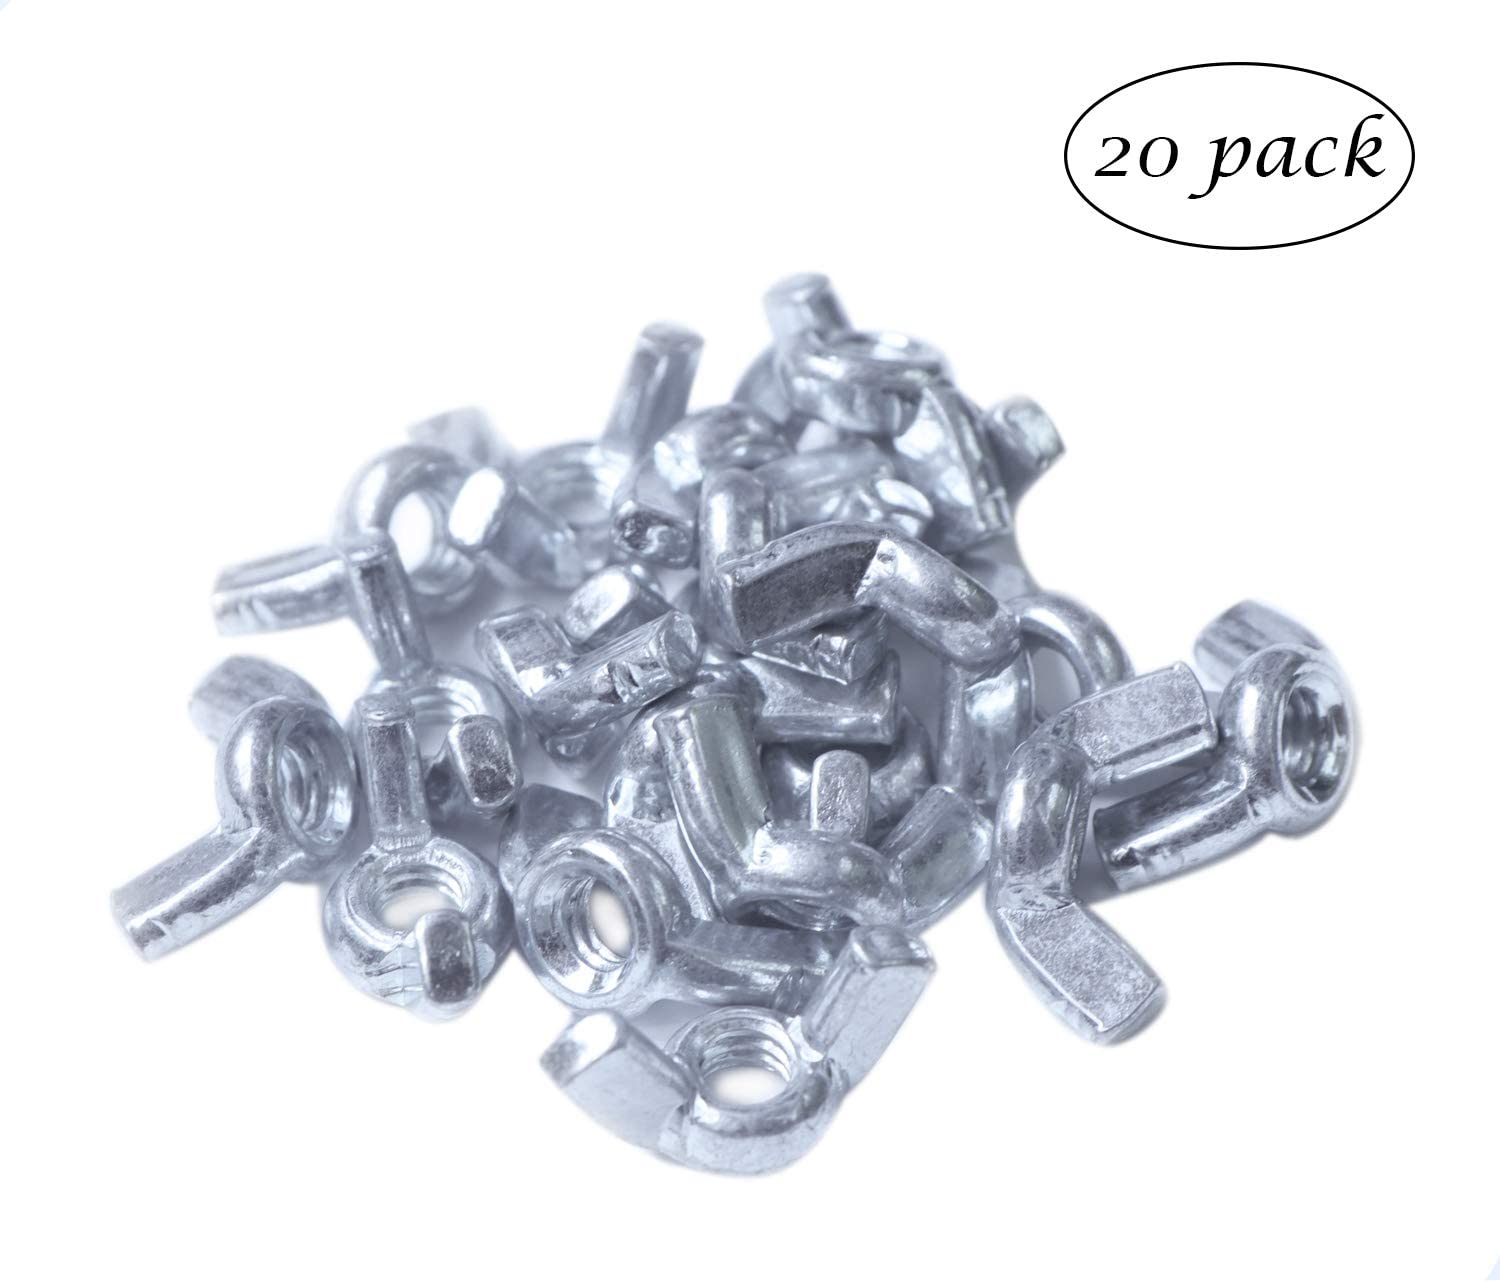 SPWOLFRT 20 Pack 1//4-20 Wing Nut Zinc Plated Fasteners Parts 1//4 Inch Butterfly Nuts 1//4-20